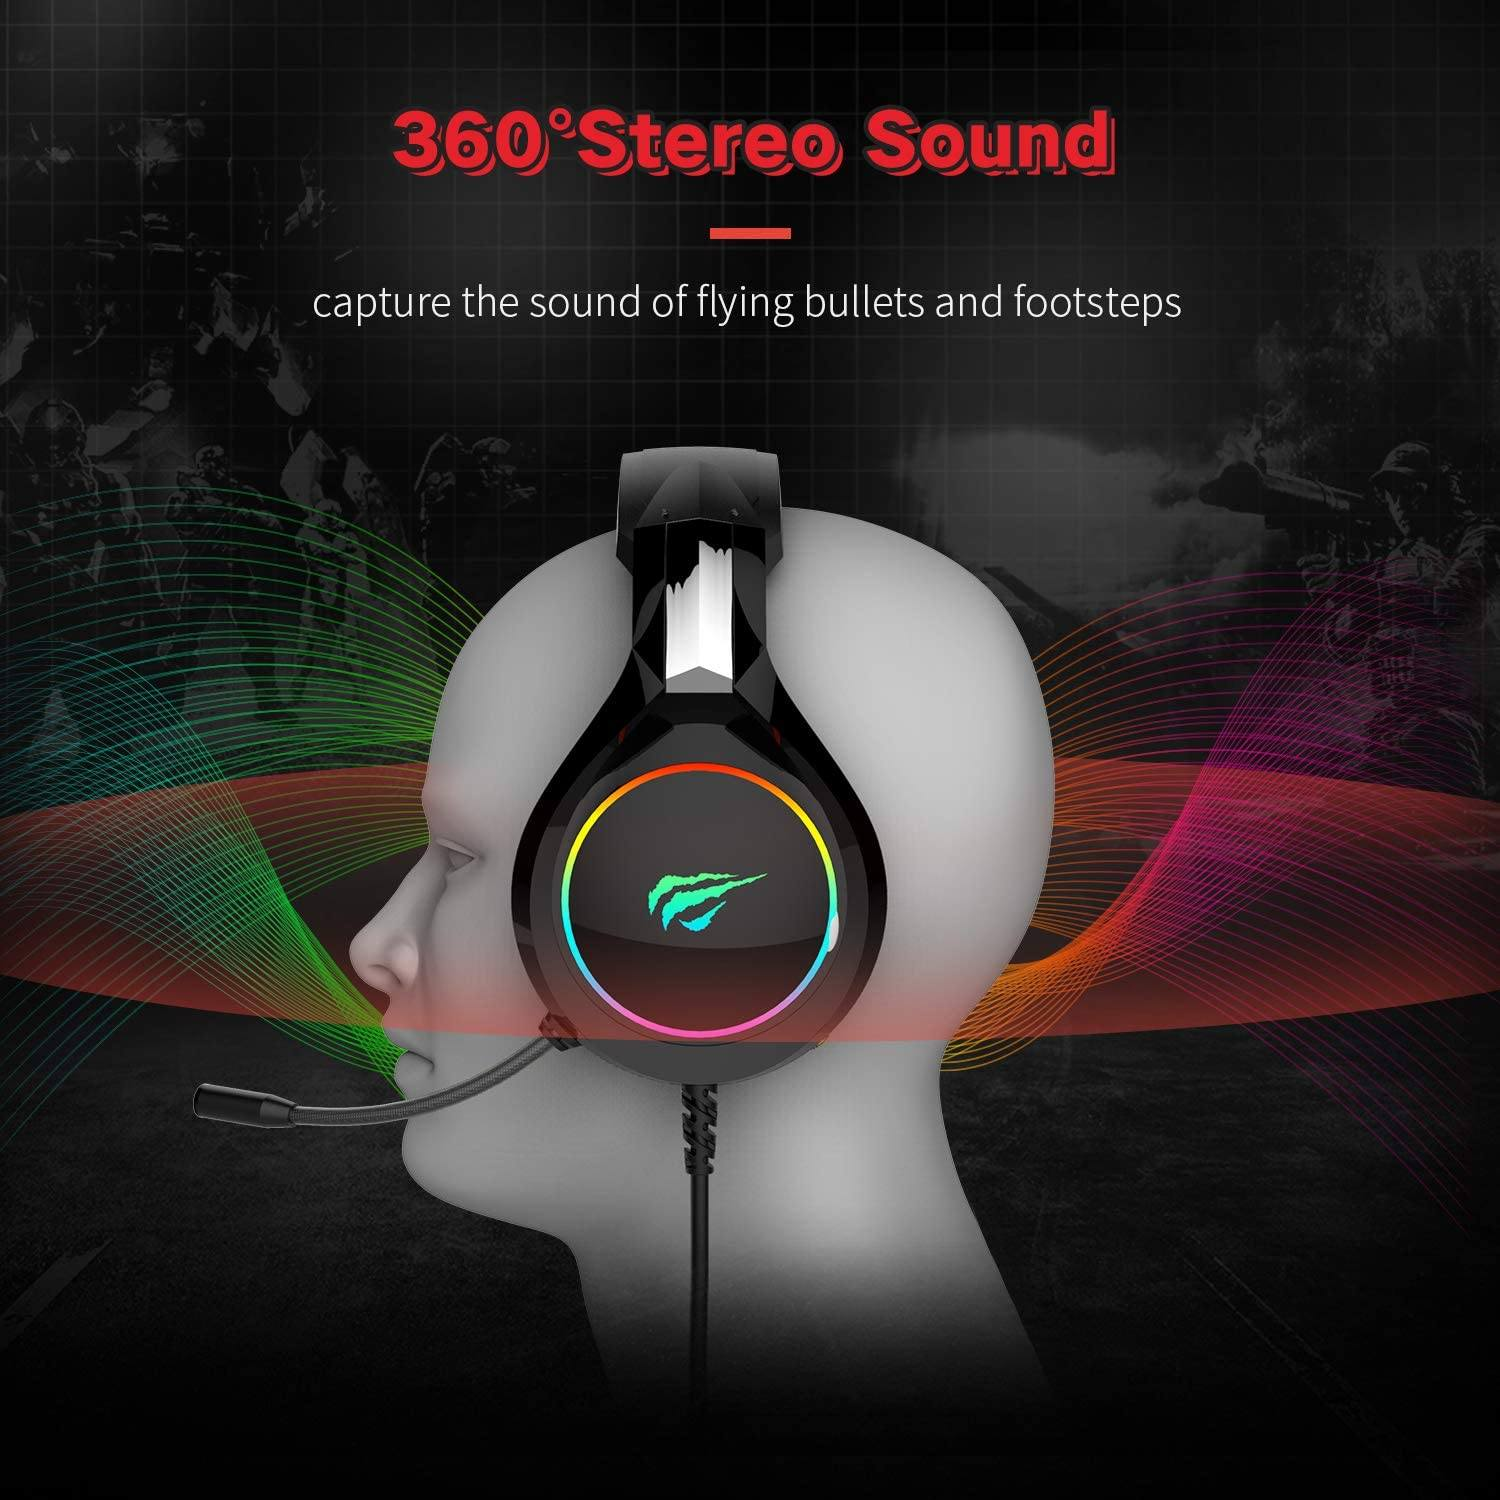 havit RGB Wired Gaming Headset PC USB 3.5mm XBOX / PS4 Headsets with 50MM Driver, Surround Sound & HD Microphone, XBOX One Gaming Overear Headphones for Computer Laptop, Black Gaming havit